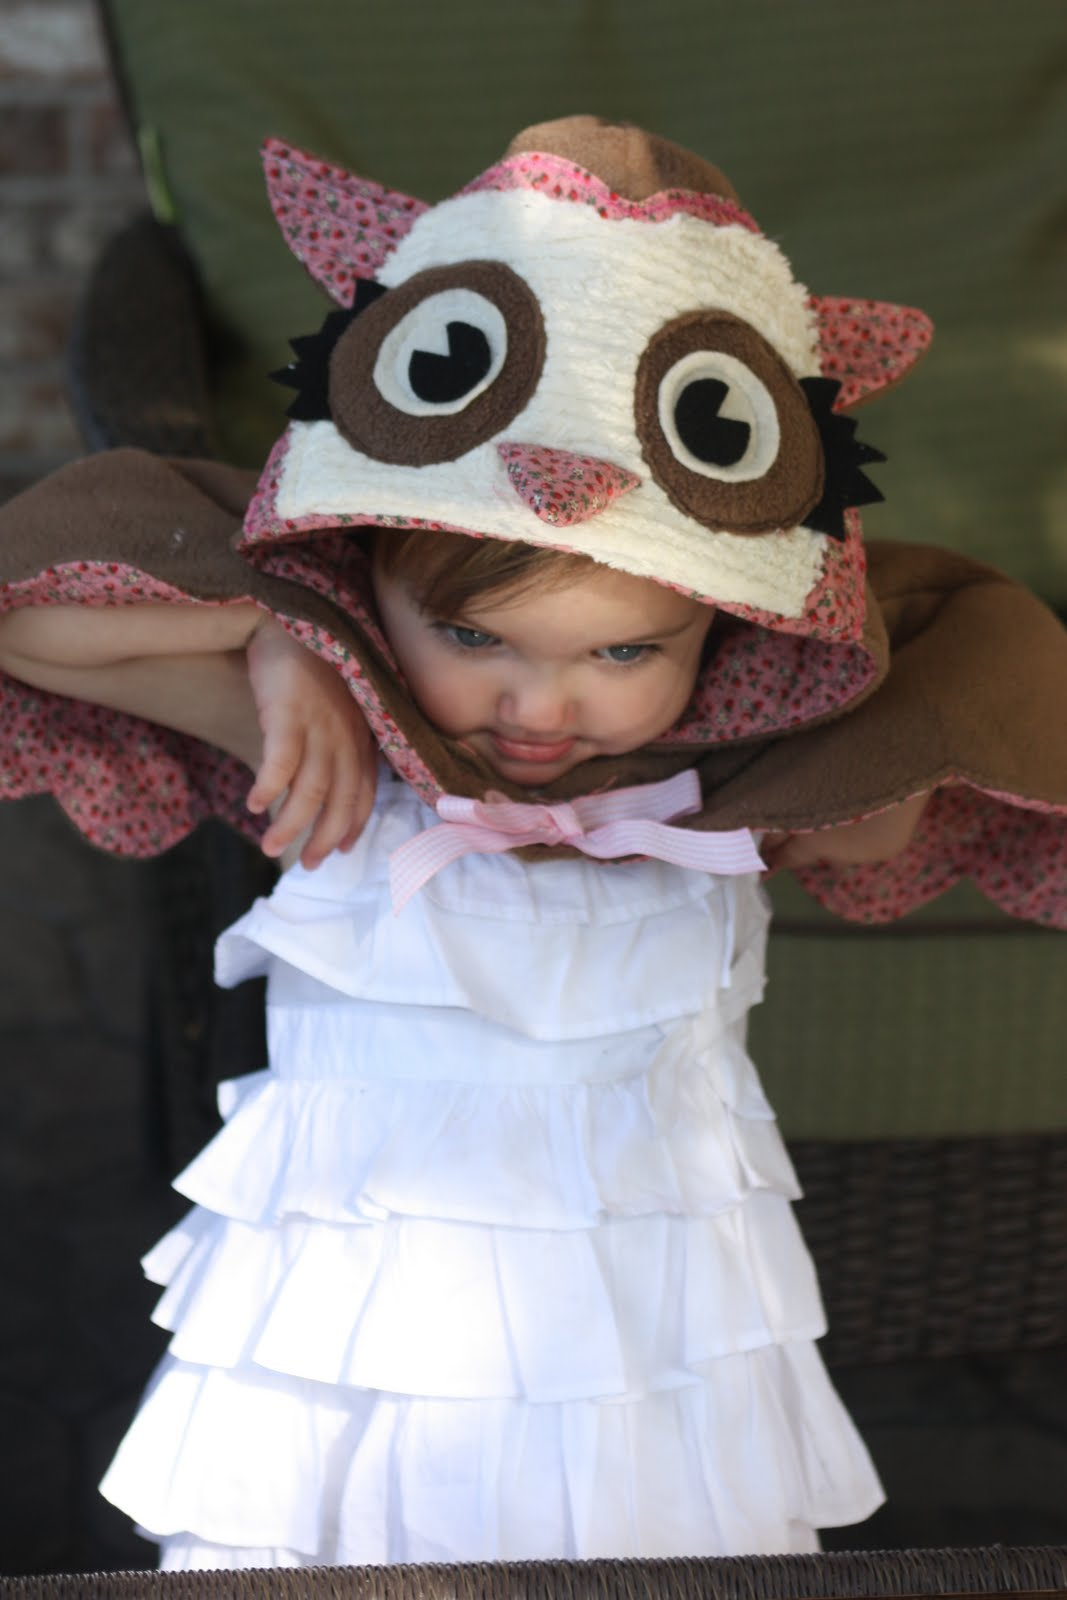 Livvy Loo Who Pottery Barn Inspired Owl Costume